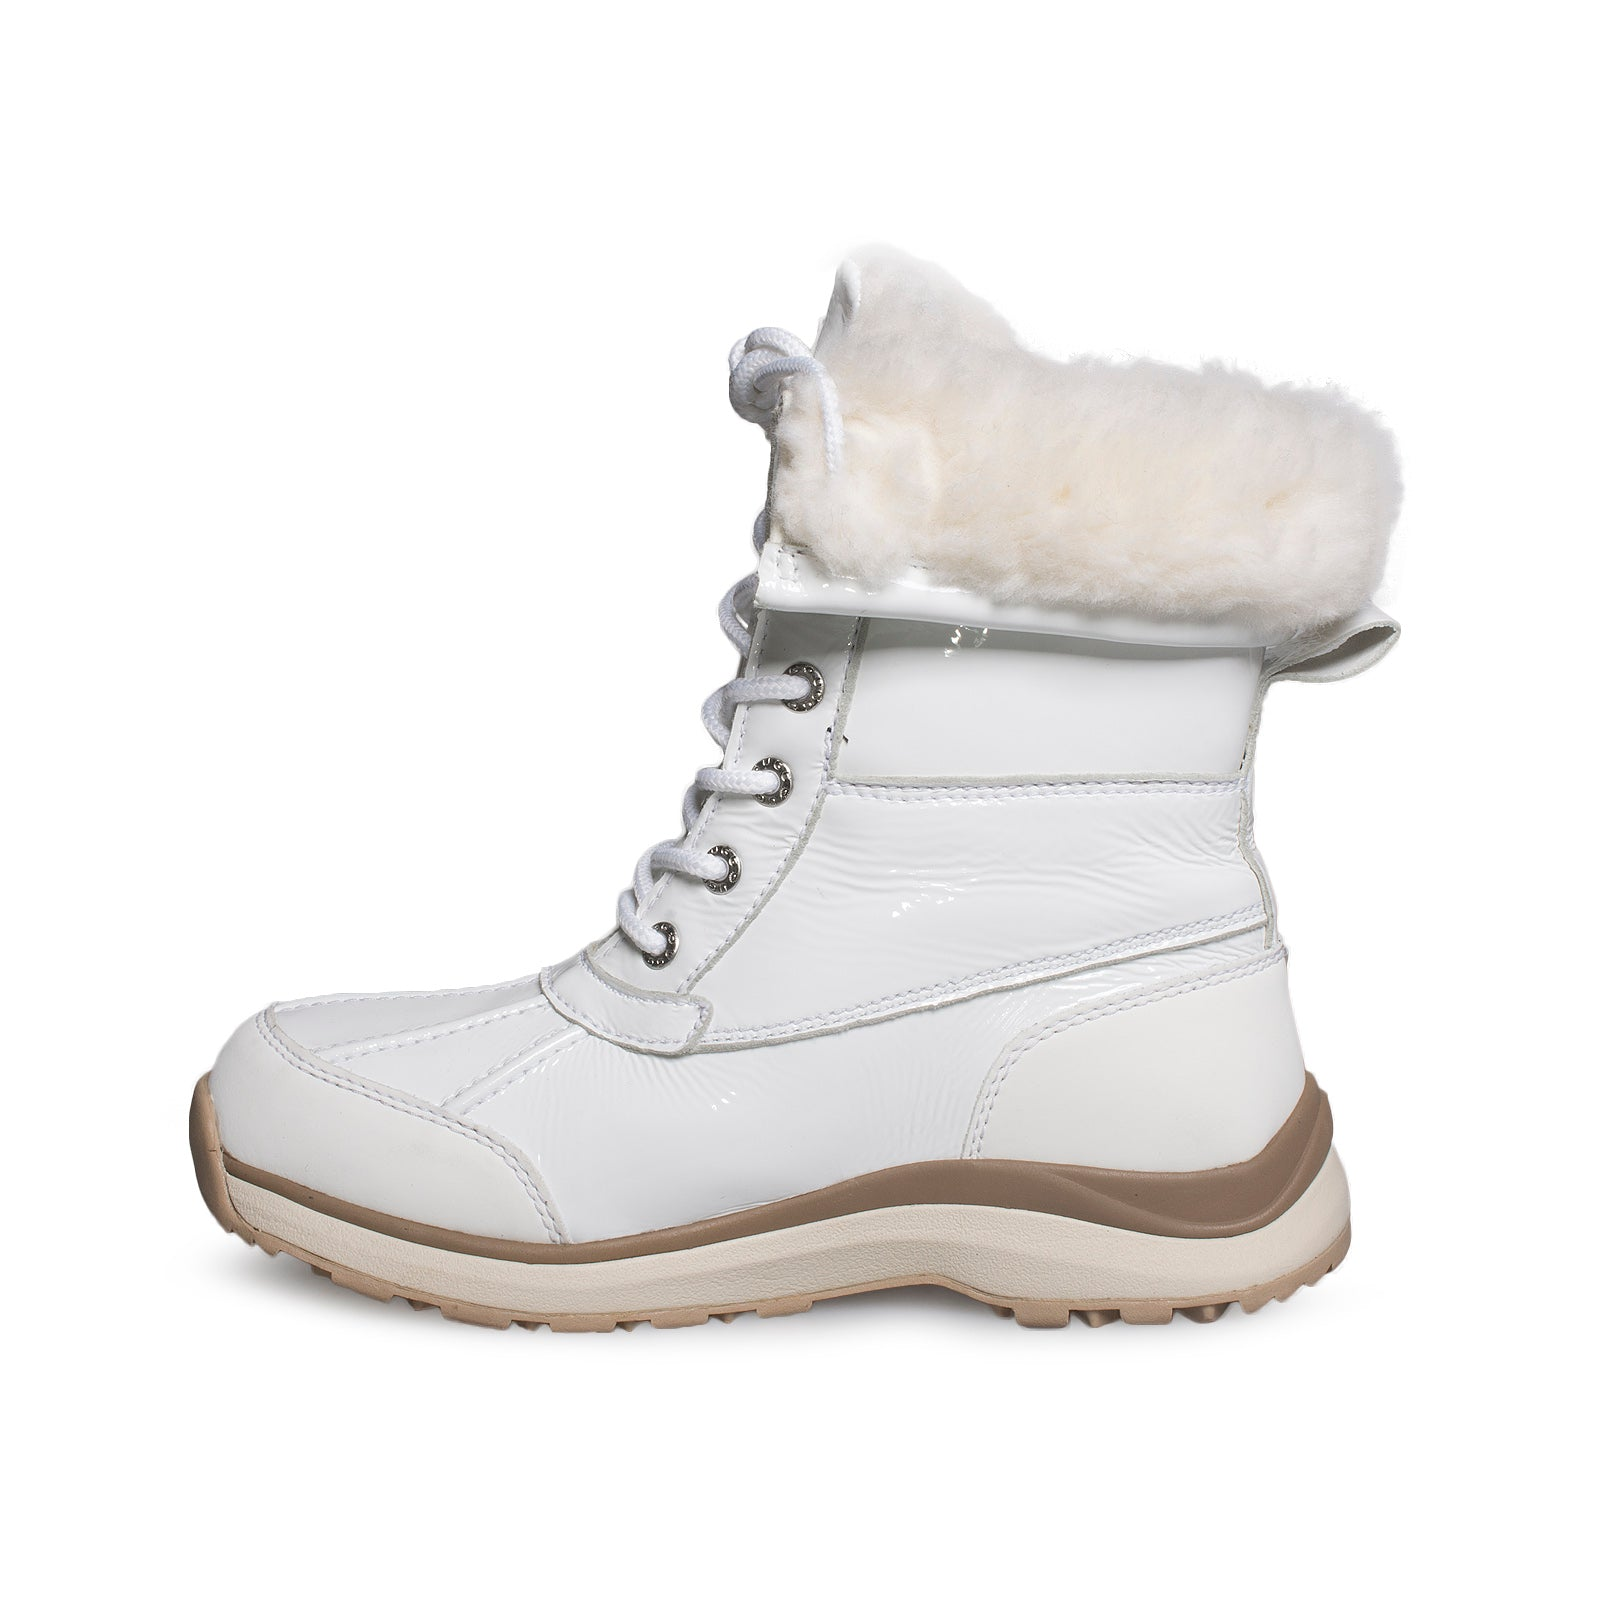 UGG Adirondack III Patent Leather White Boots - Women's